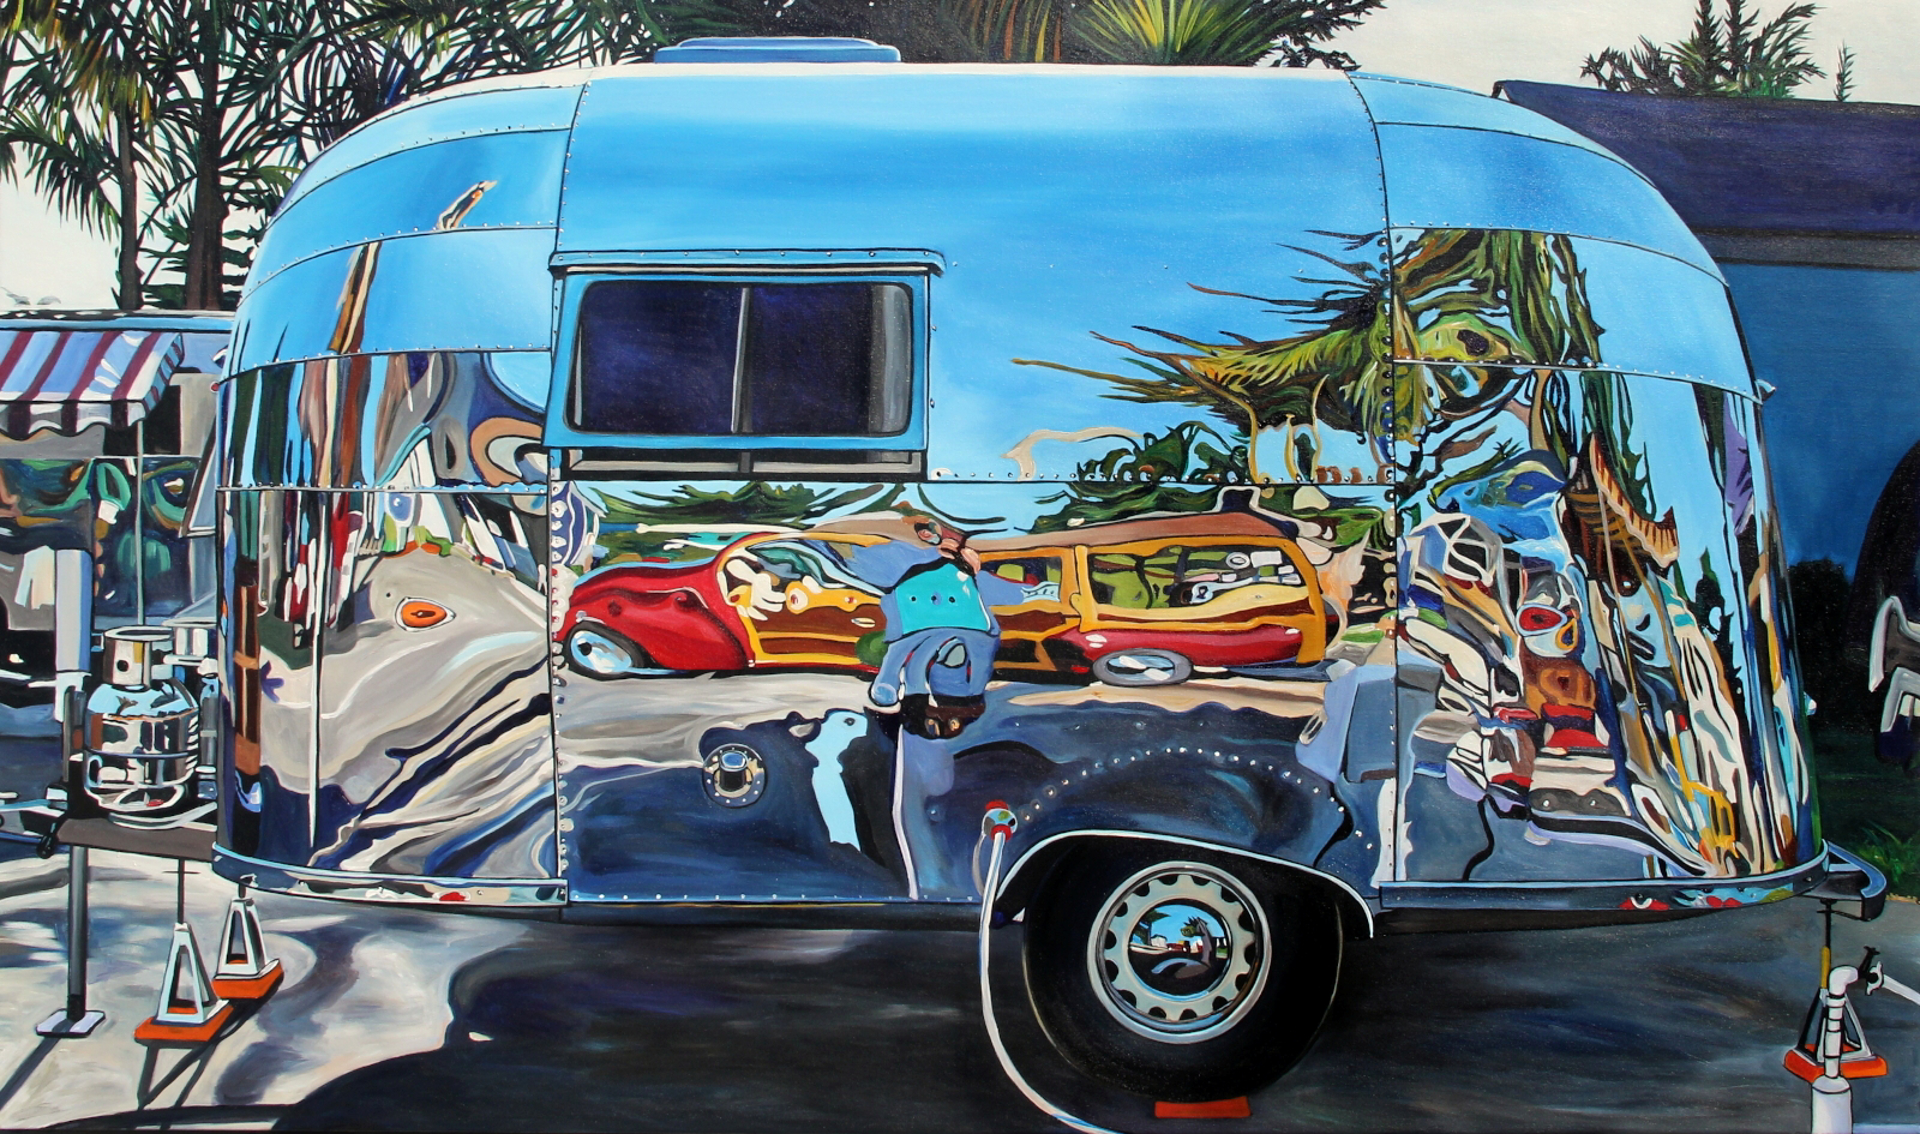 Airstream Reflecting Wooden Station Wagon by Taralee Guild